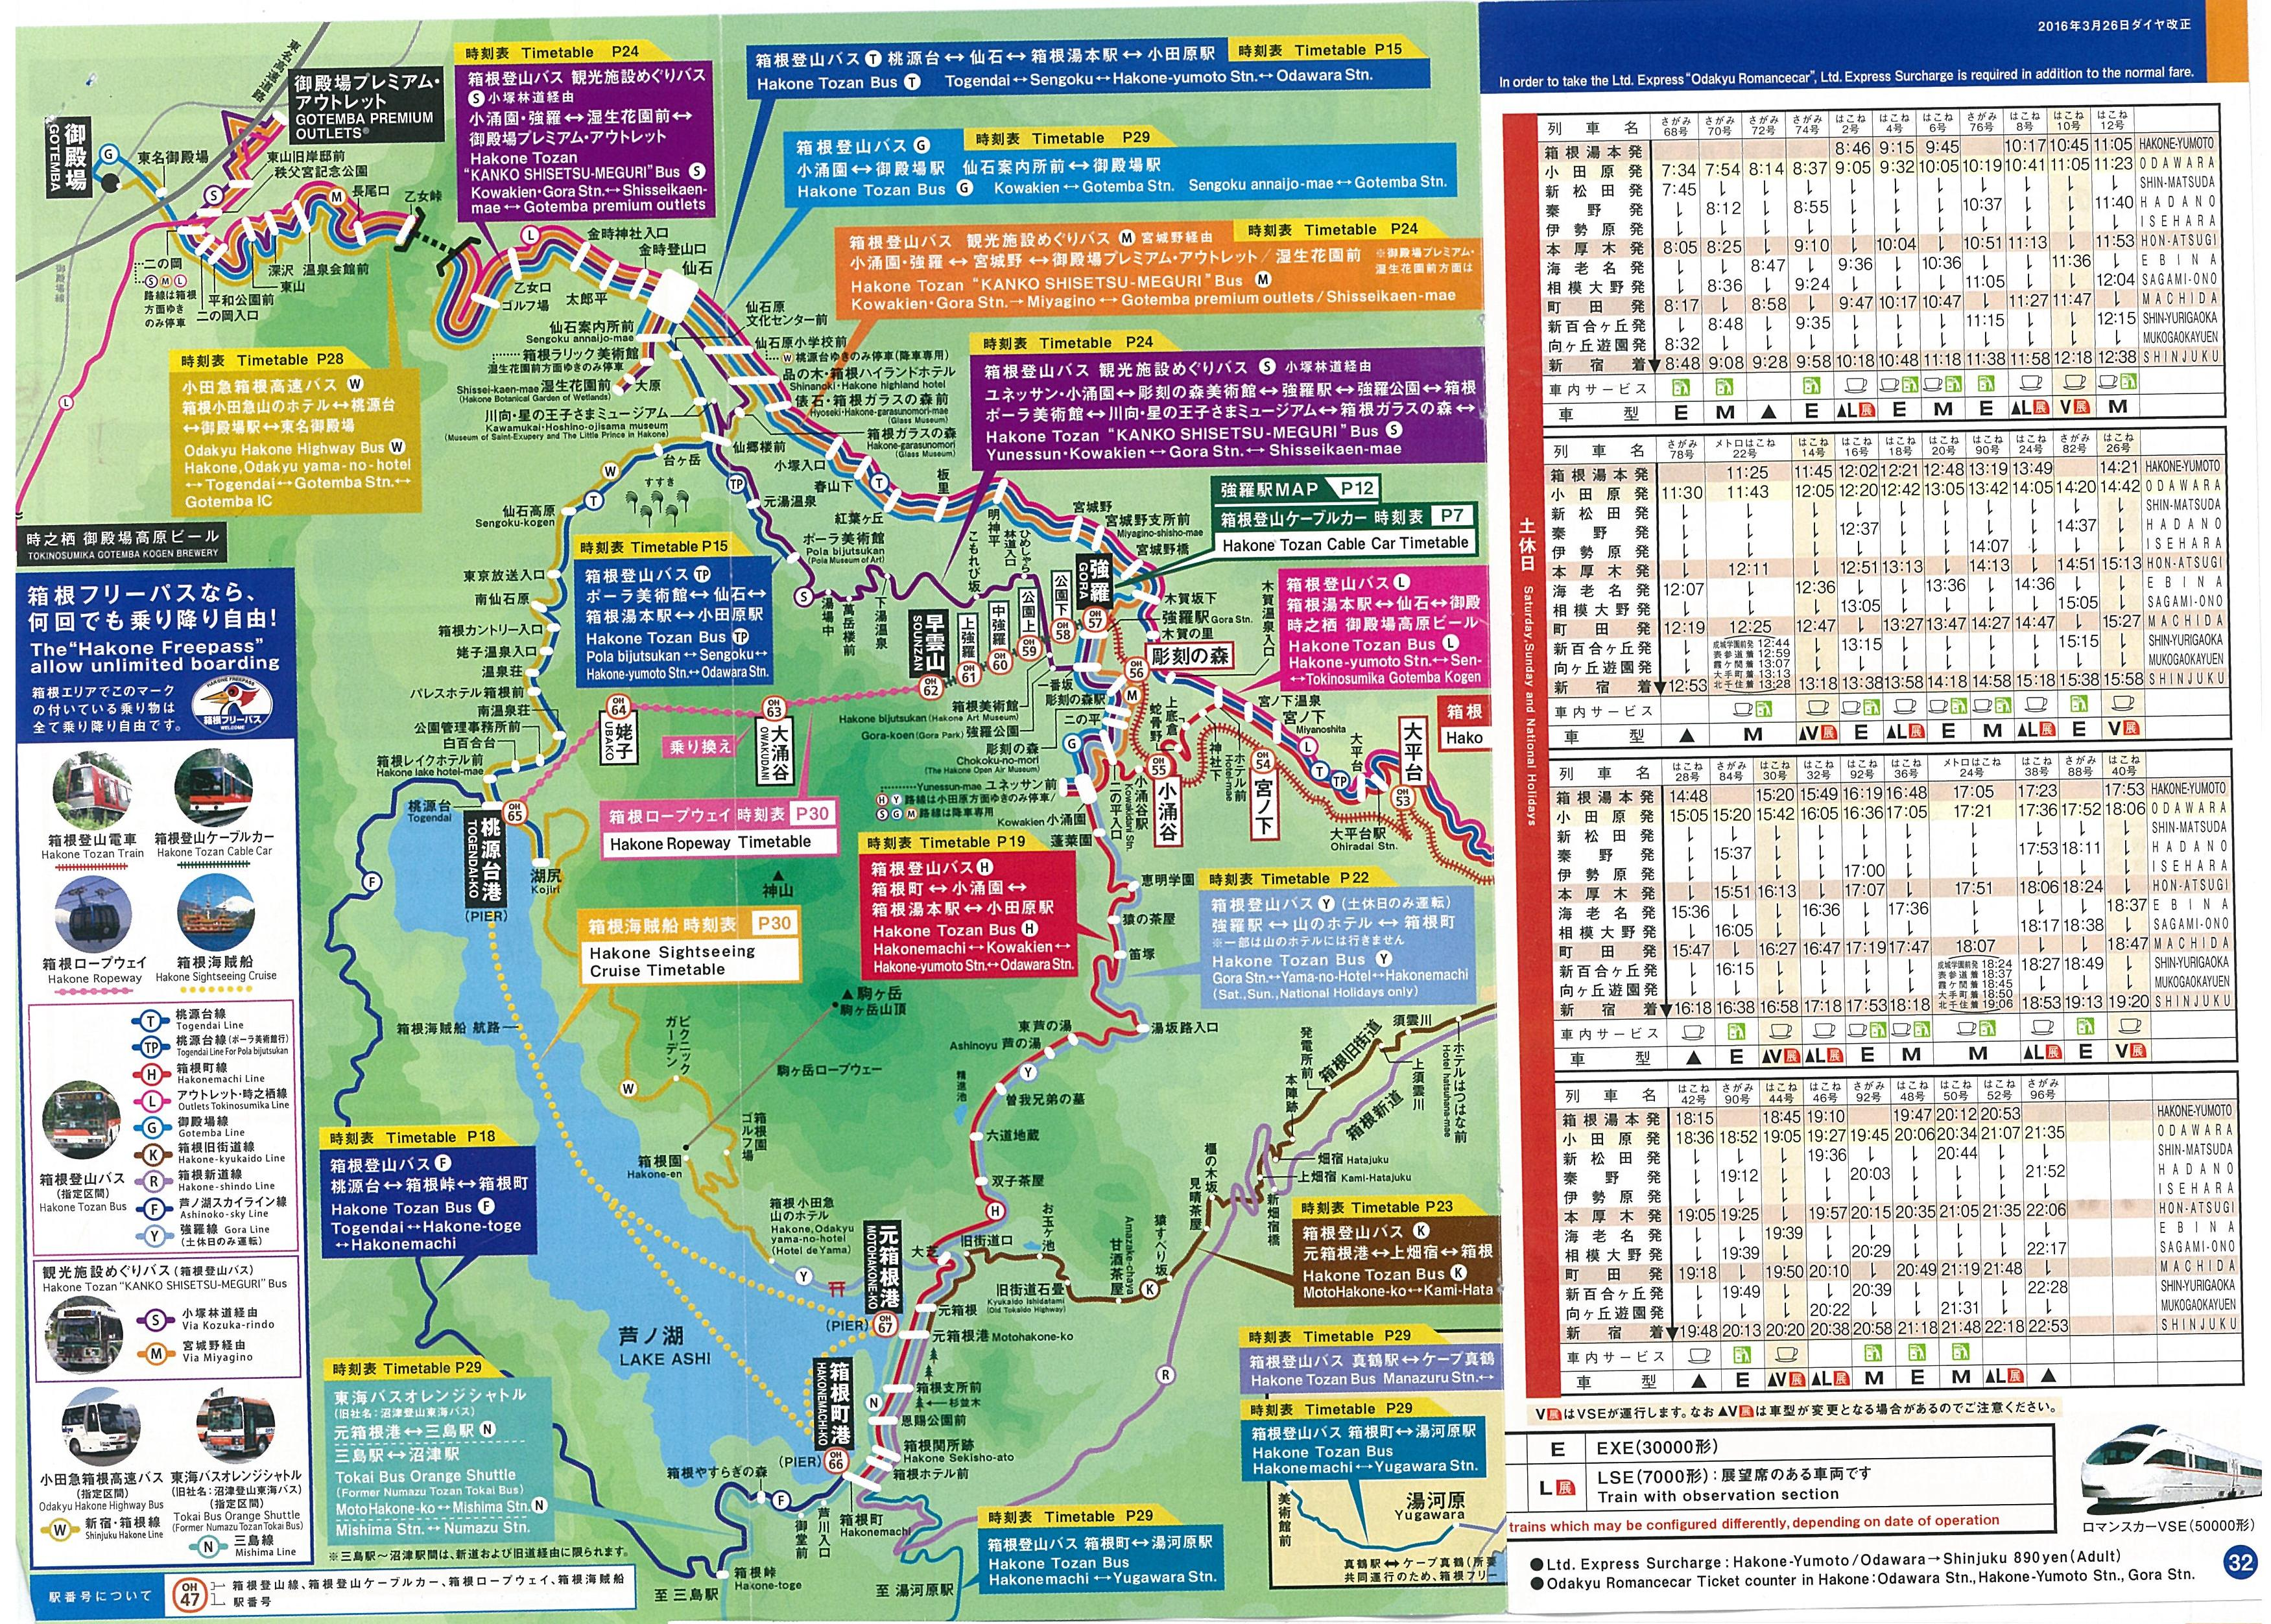 [Continuation] Day Trip from Tokyo : Hakone 箱根. Maps and 9 timeteables. Page 32. Hakone Free Pass Guide to unlimited boarding and the Odakyu Romance Car Timetable    小田ロマンスカー 時刻表. 箱根エリアでこのマークのついている乗りもの全て乗り降り自由です